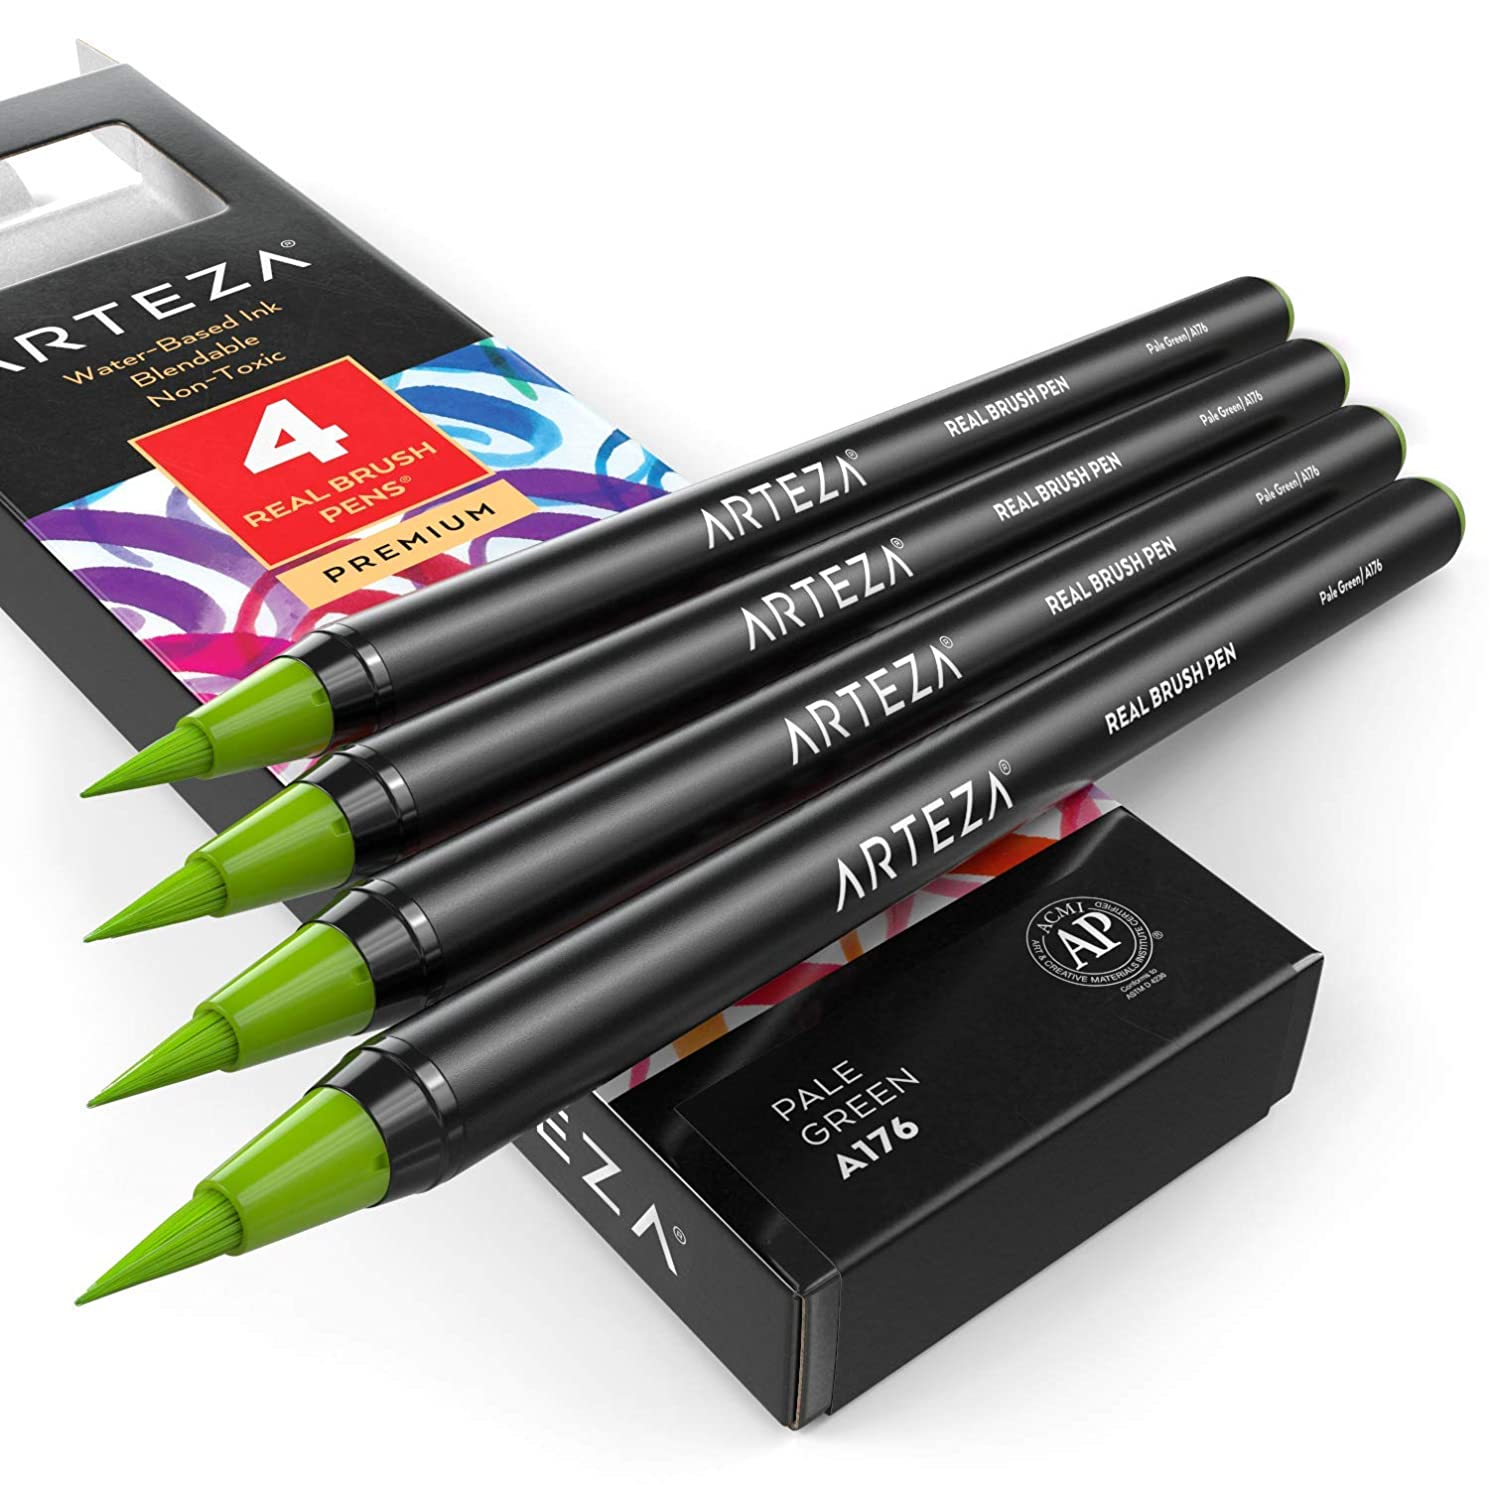 ARTEZA Real Brush Pens (A176 Pale Green) Pack of 4, for Watercolor Painting with Flexible Nylon Brush Tips, Paint Markers for Coloring, Calligraphy and Drawing